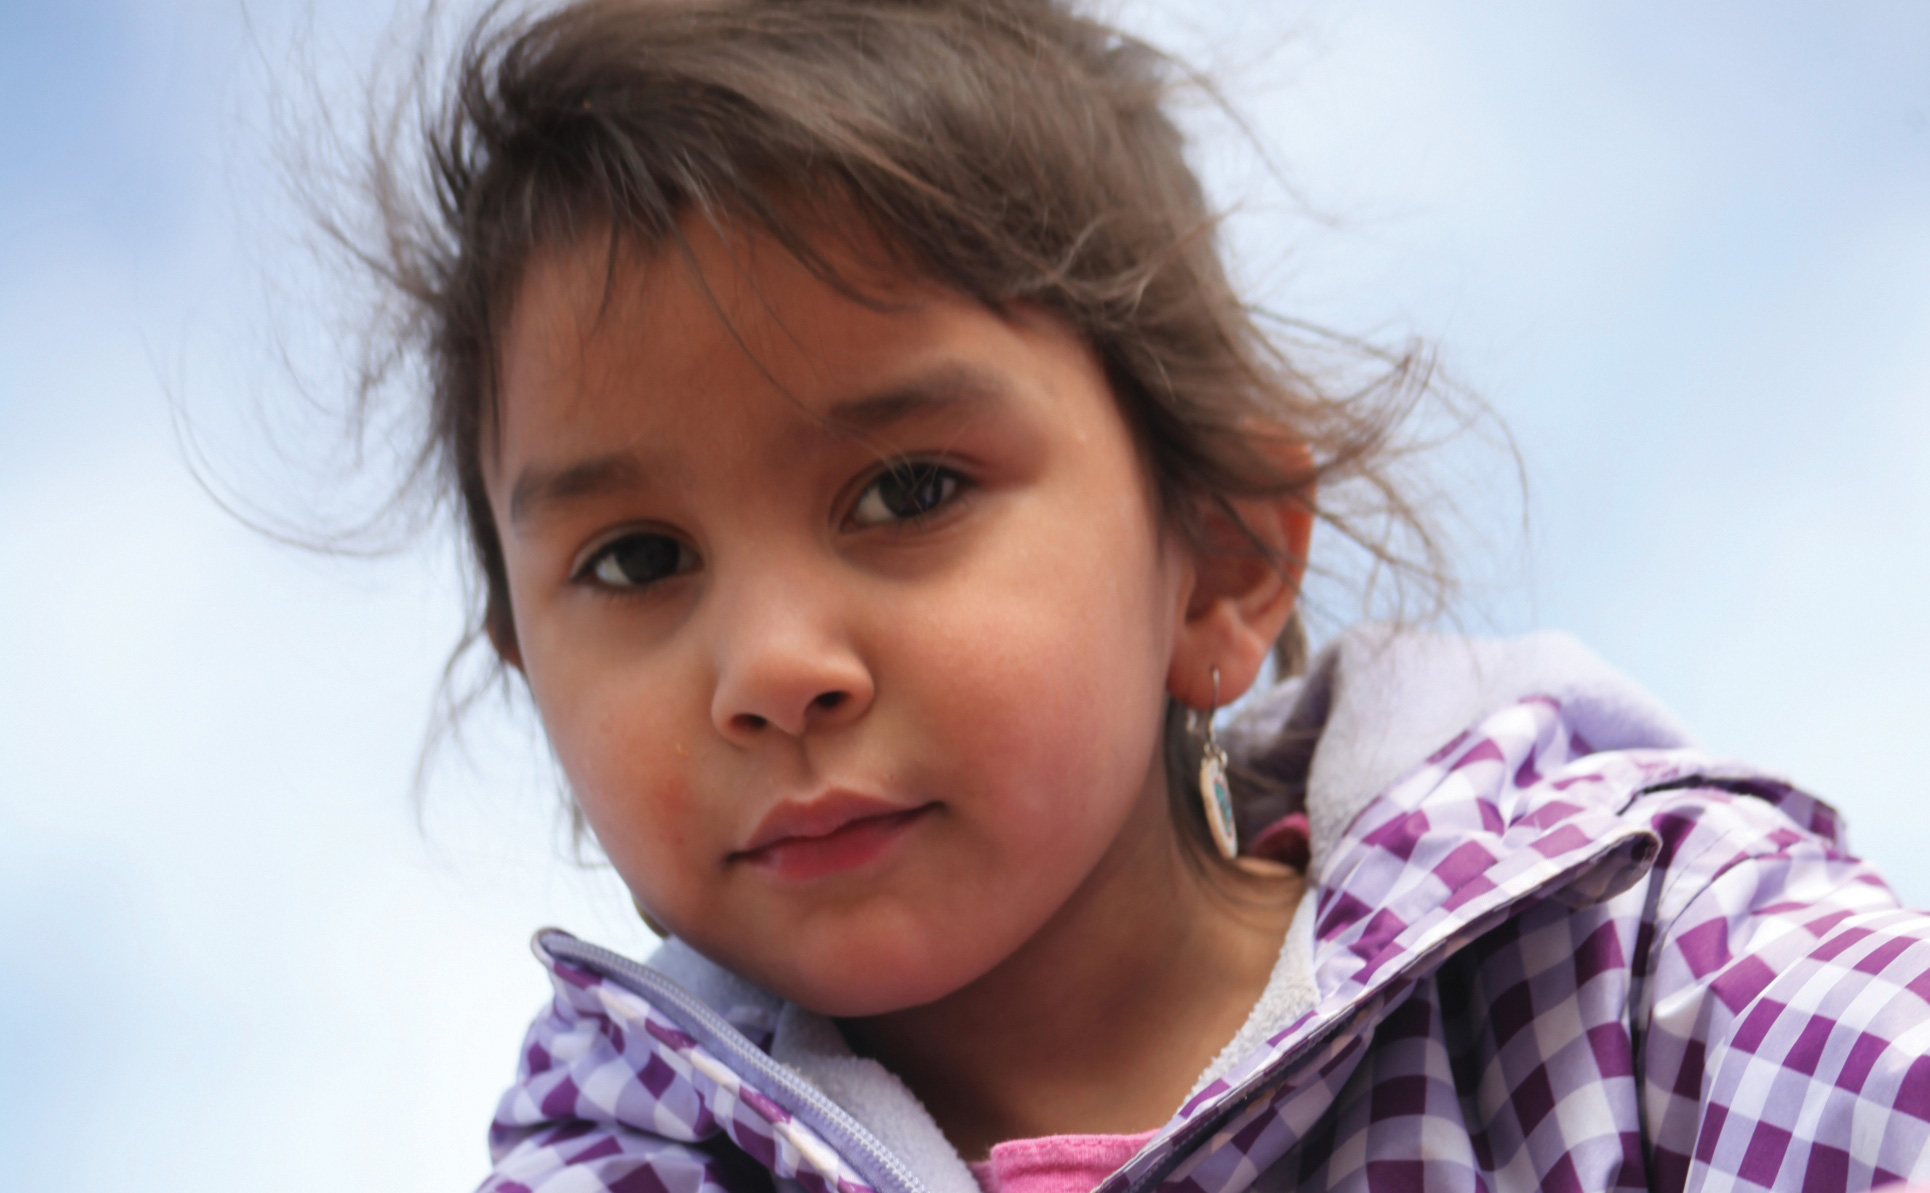 Aboriginal Girl in Playground.jpg